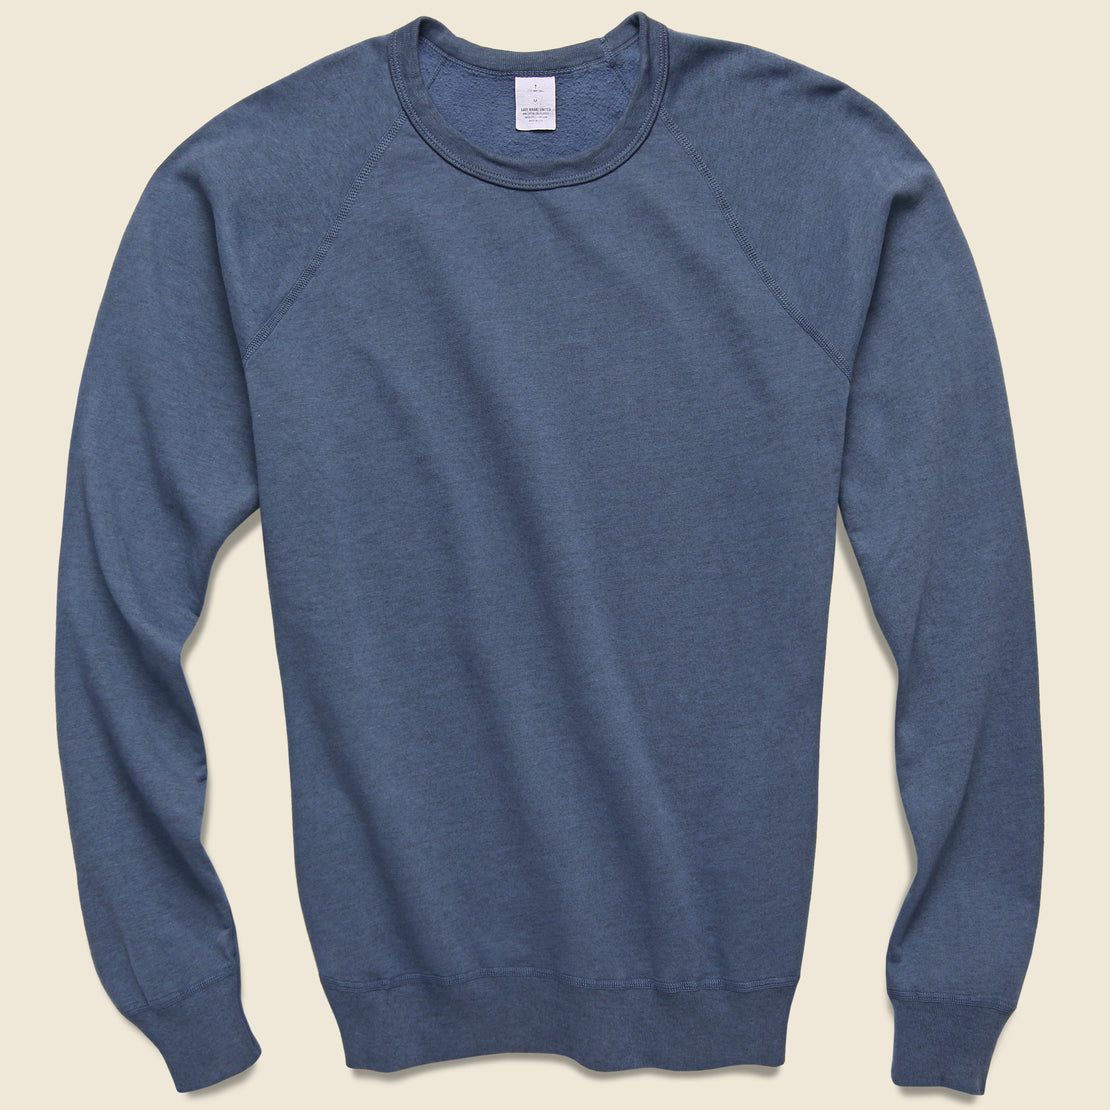 Save Khaki Heather Fleece Sweatshirt - Good Blue